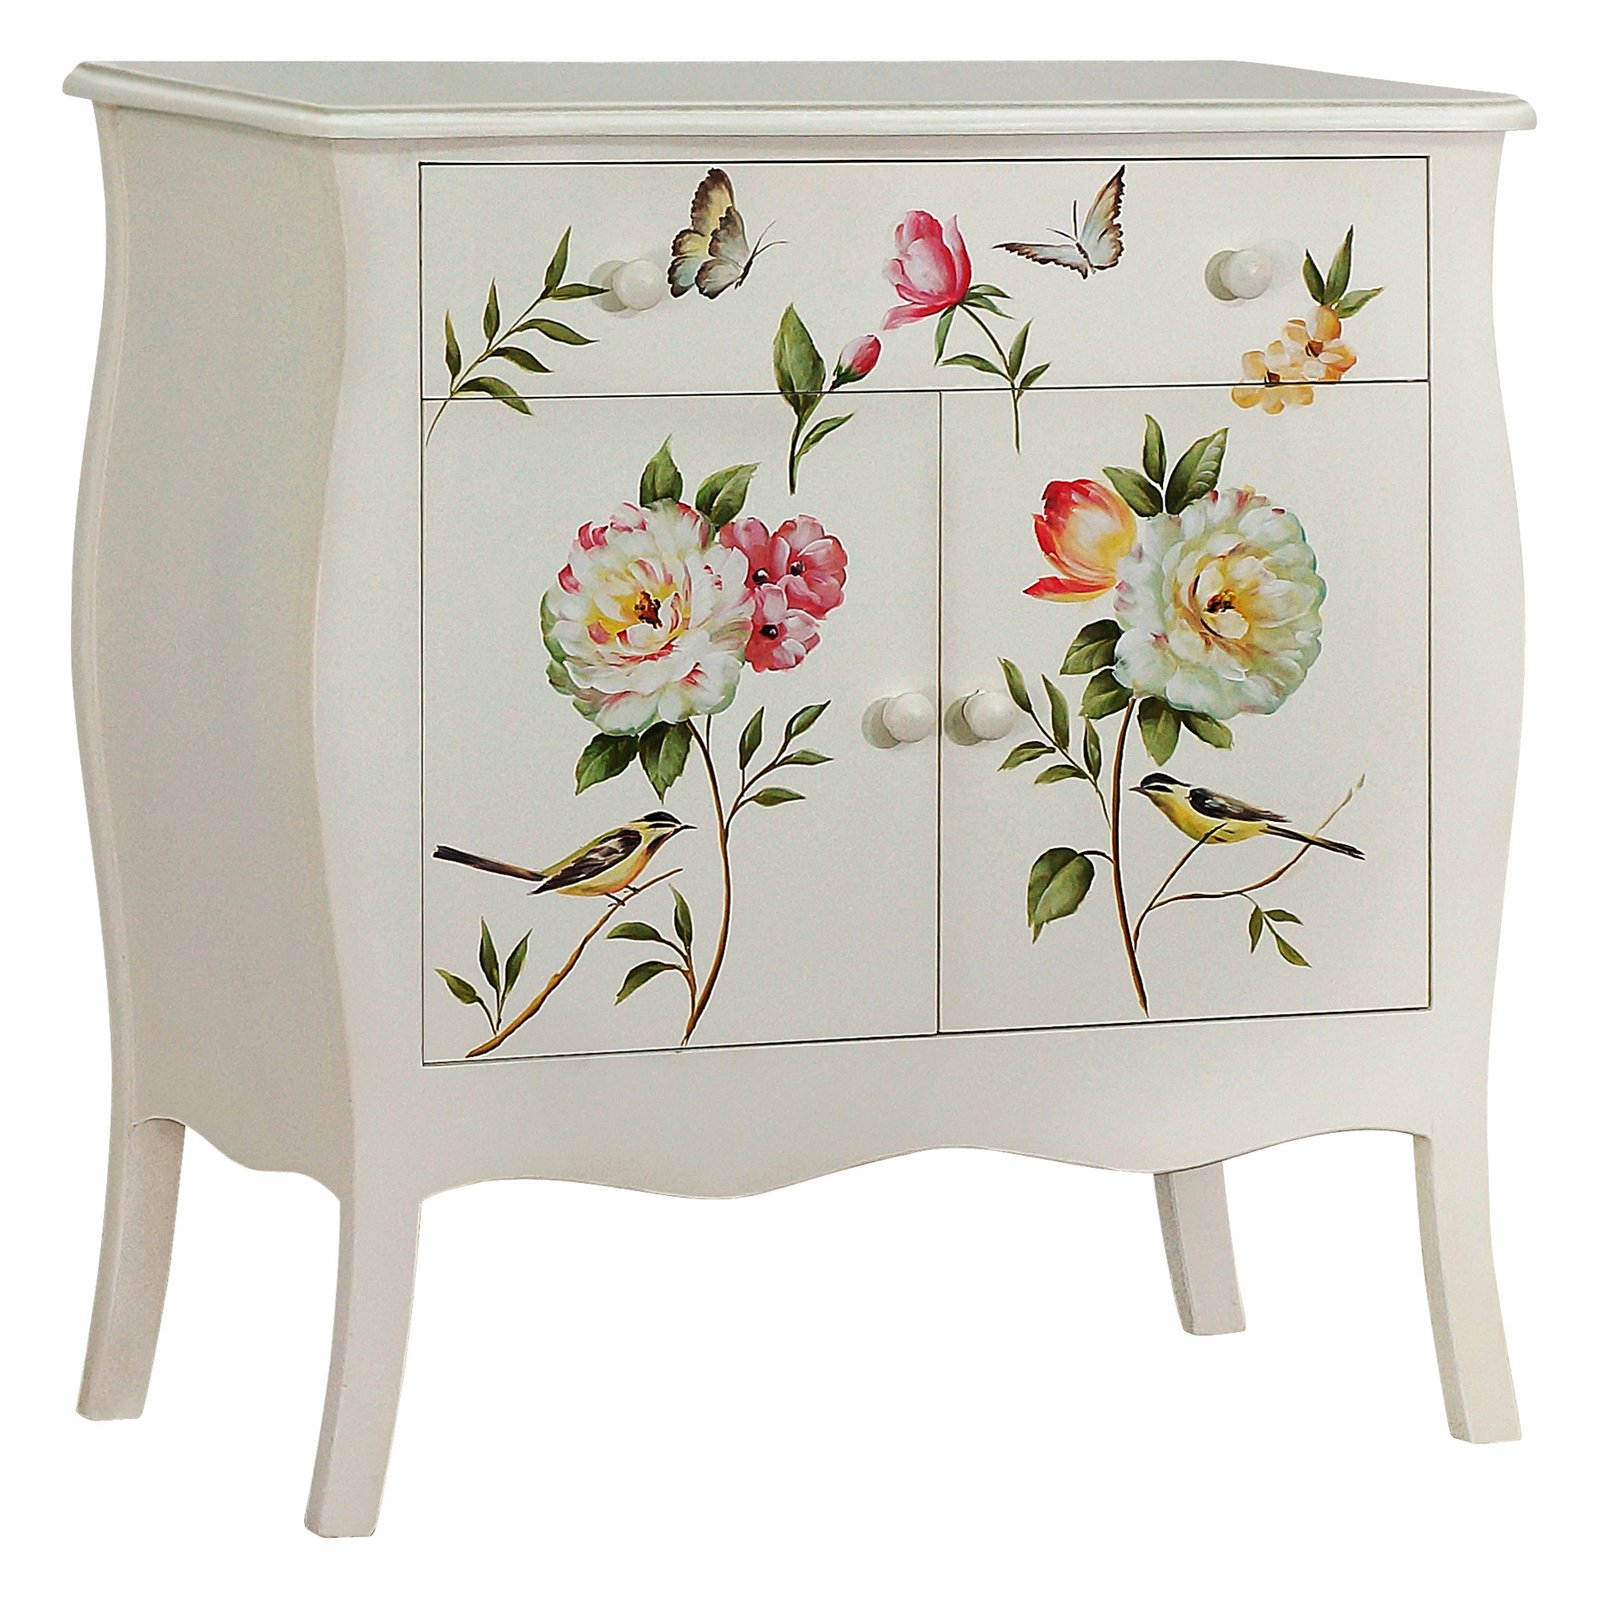 Gallerie Decor Floral Gardens Hand-Painted Cabinet